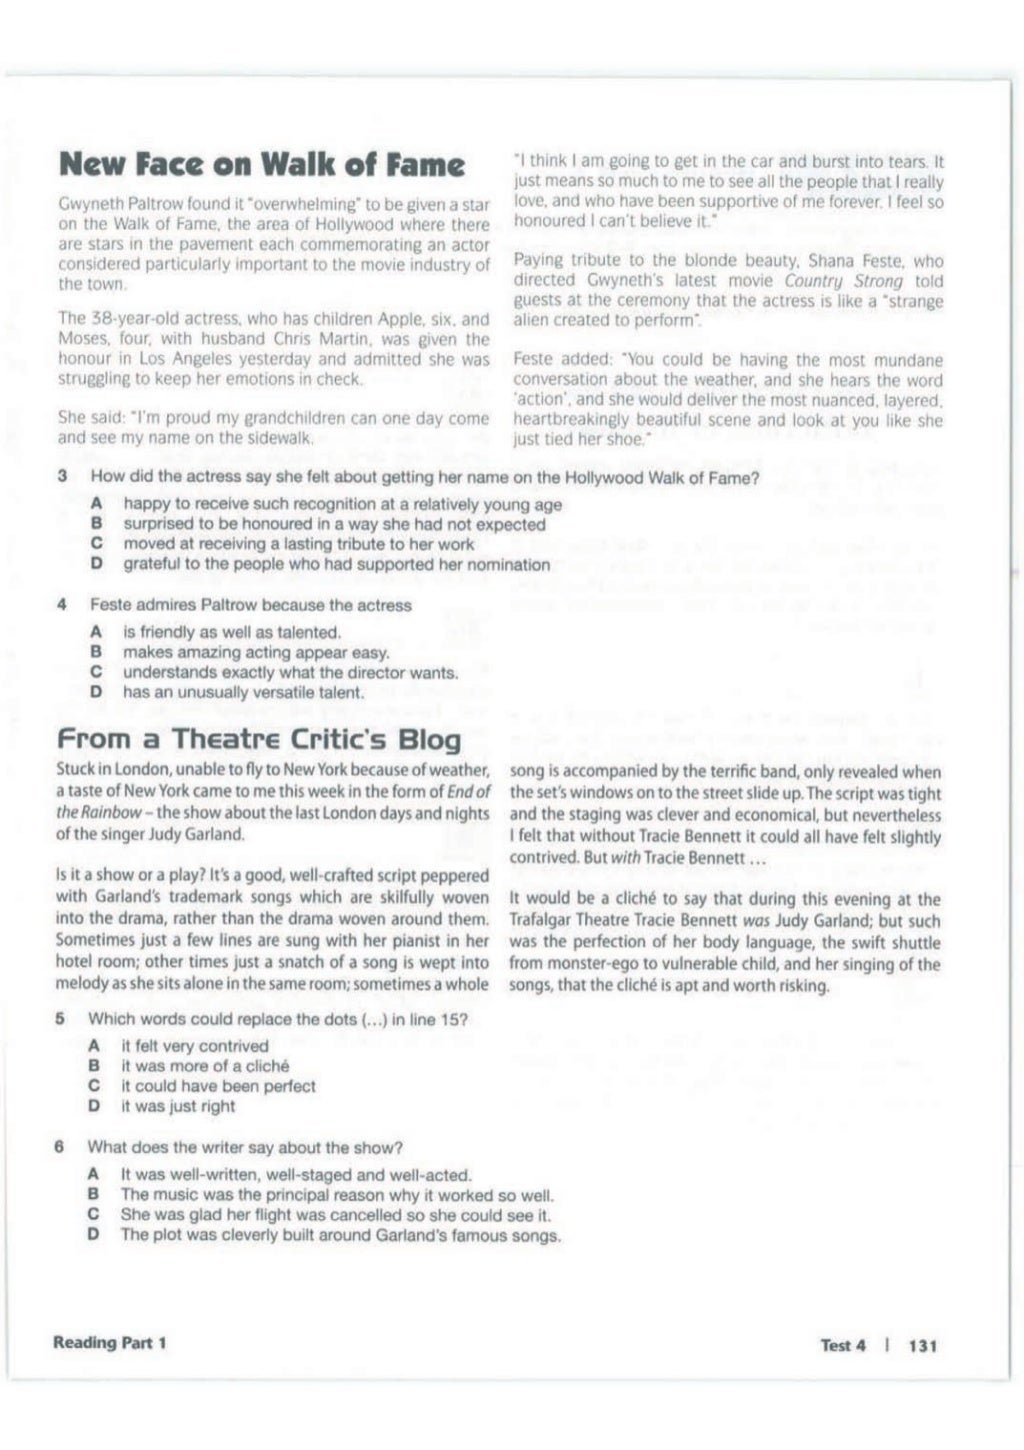 Advanced trainer 6 practice tests with answers book4joy (1) page 132